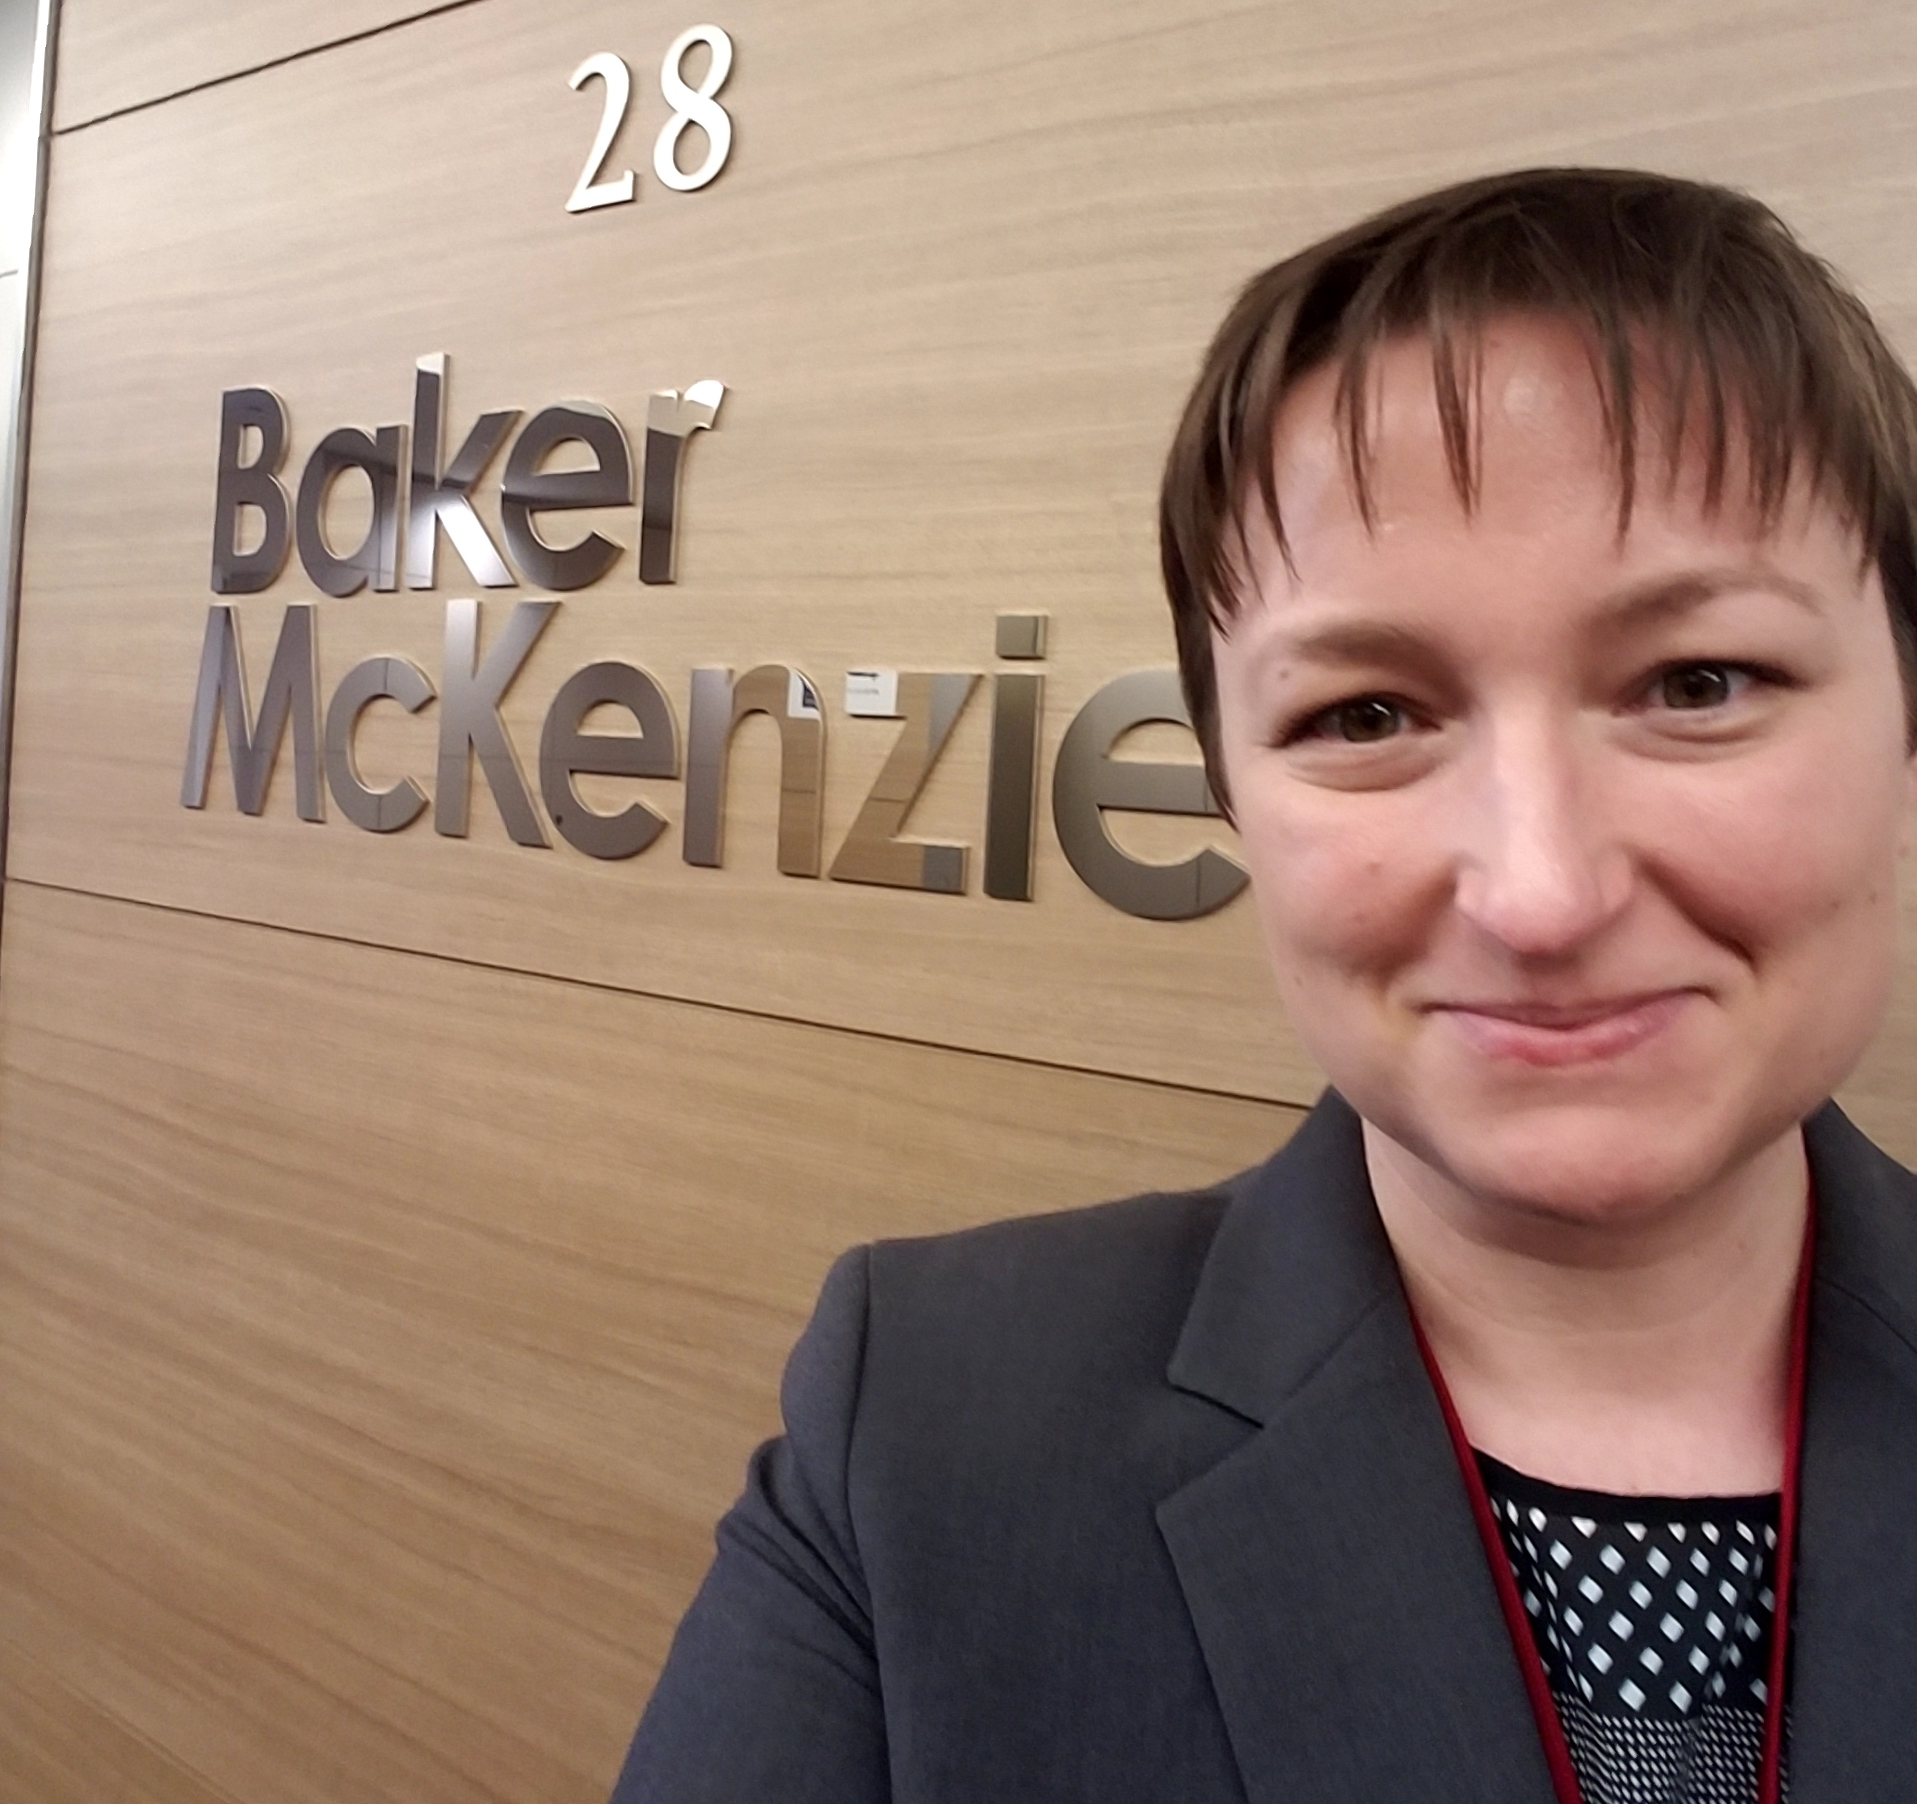 BYU Law student Annemarie Garrett worked as a summer associate at Tokyo's Baker McKenzie law firm. She has accepted a position at Utah Kirton McConkie following graduation from BYU Law School.